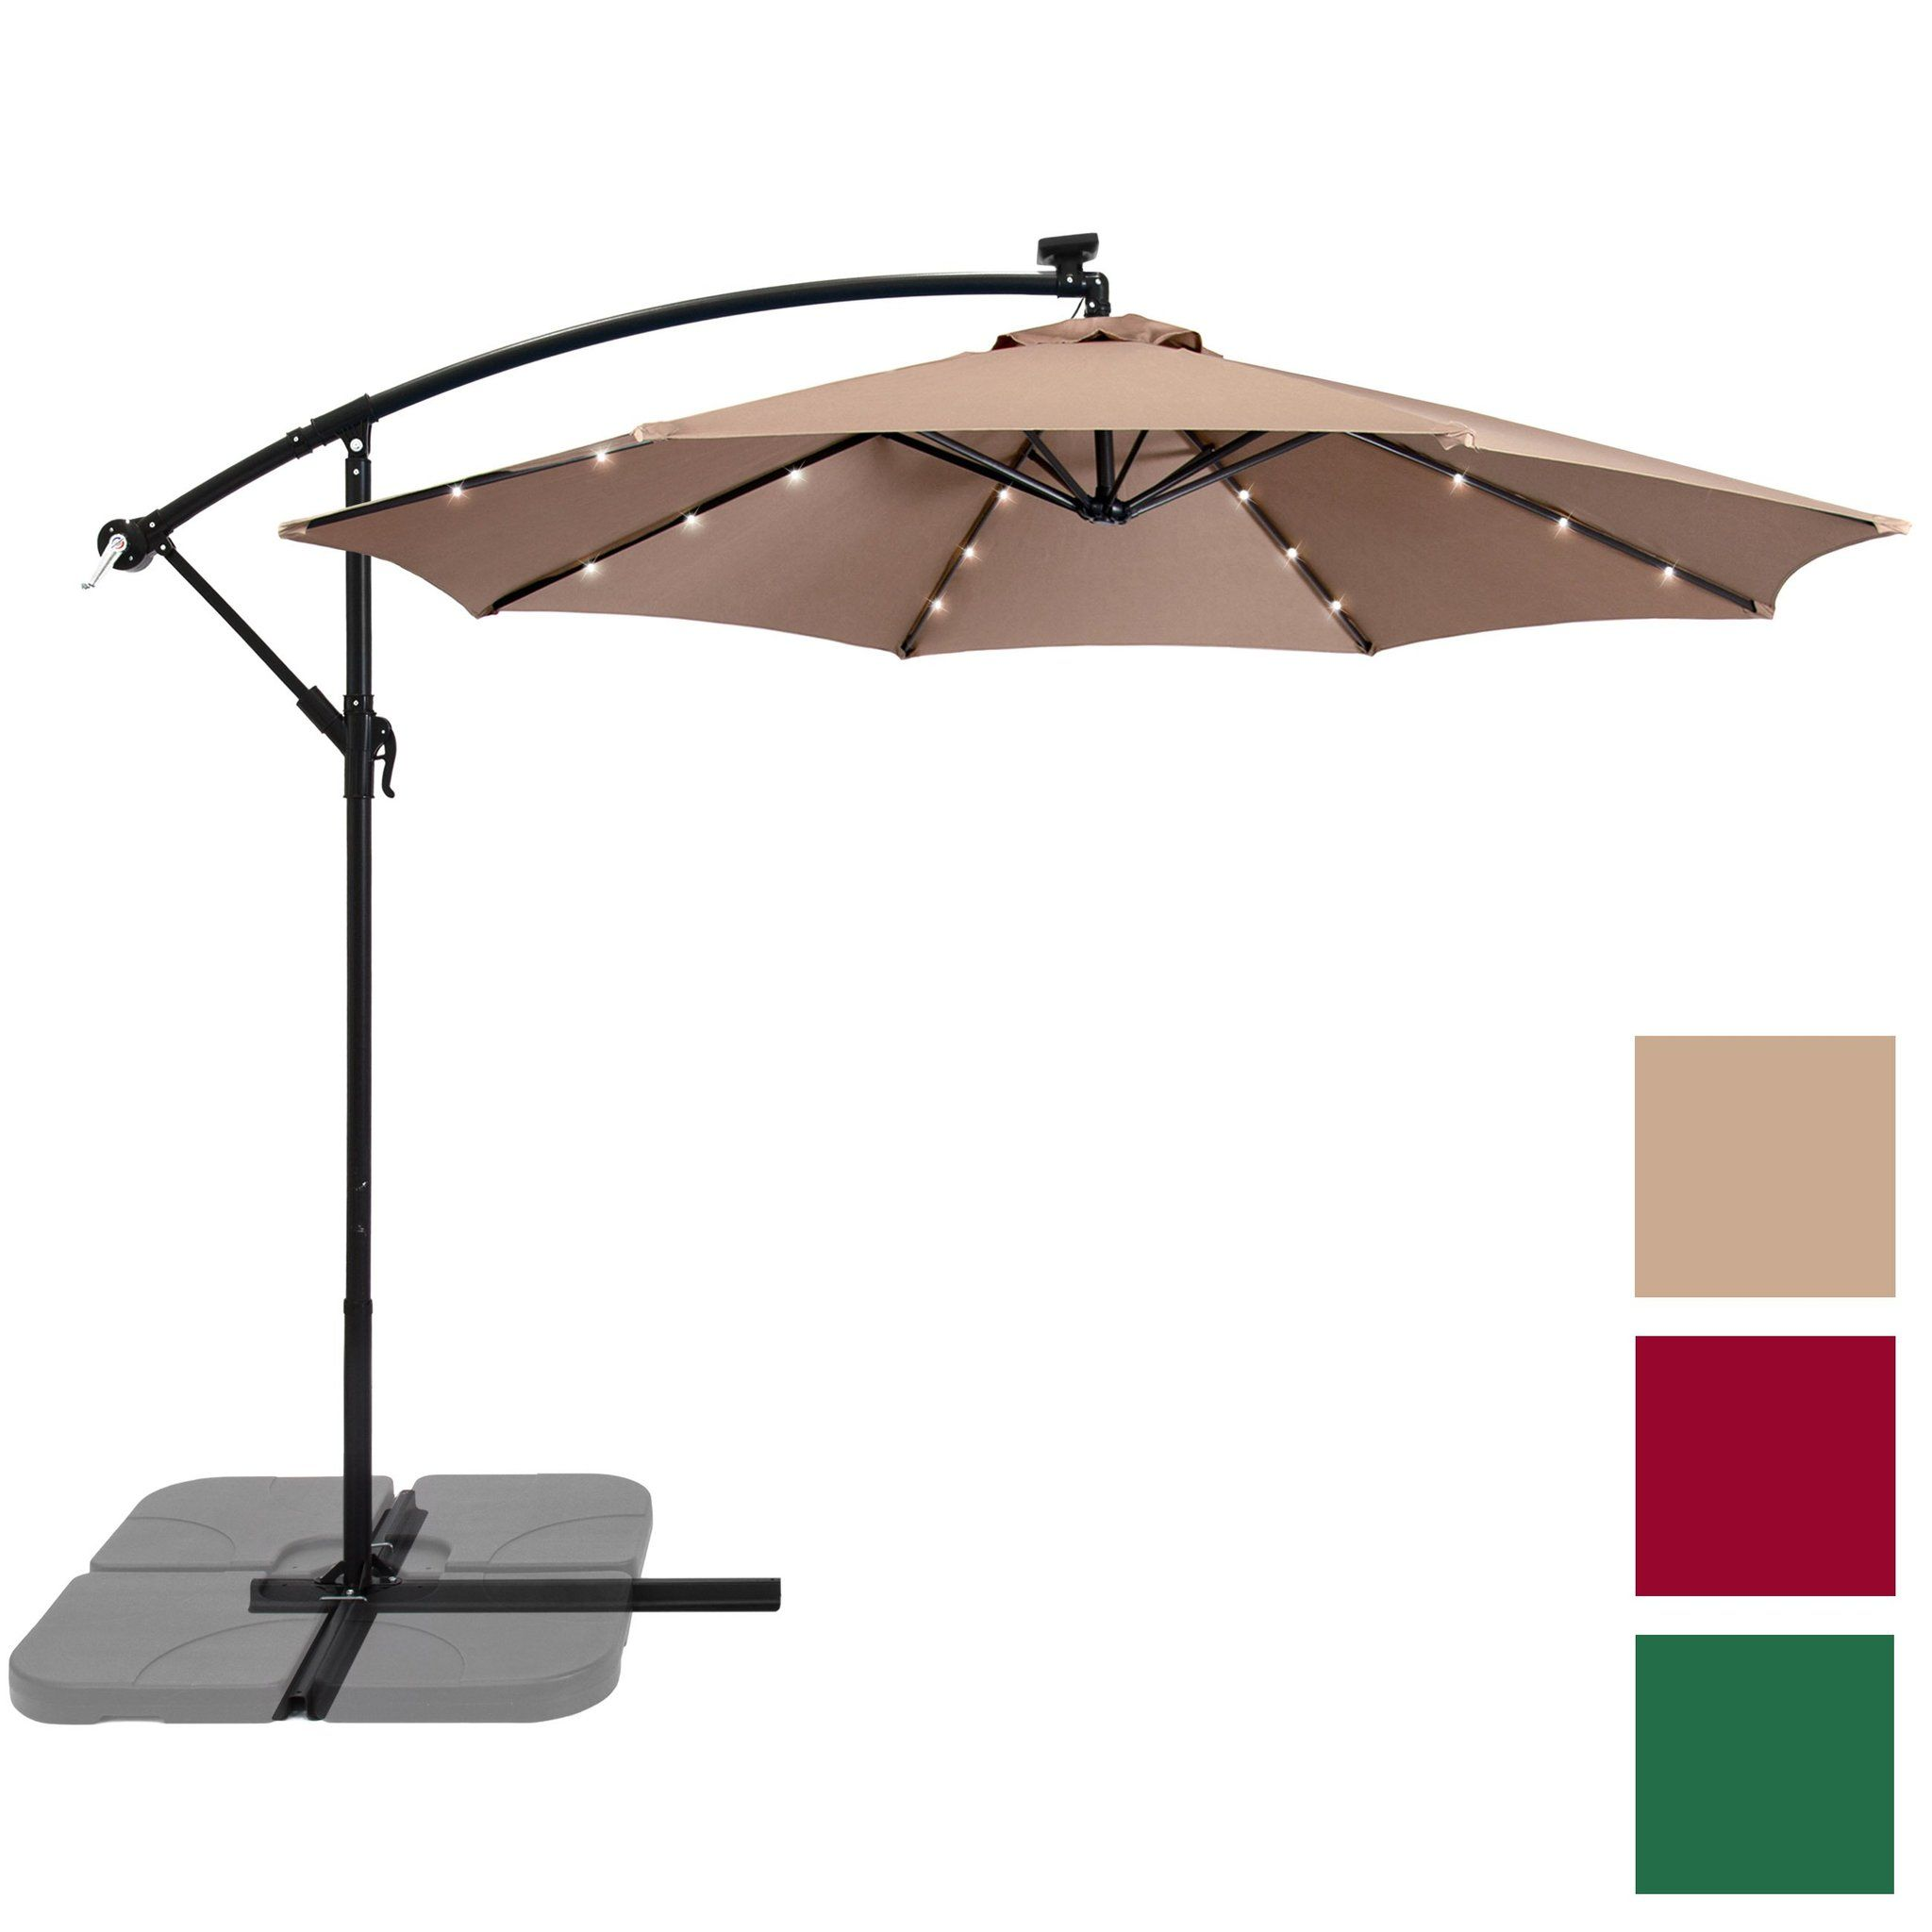 10 Solar Patio Offset Umbrella Tan Offset Umbrella Offset Patio Umbrella Solar Led